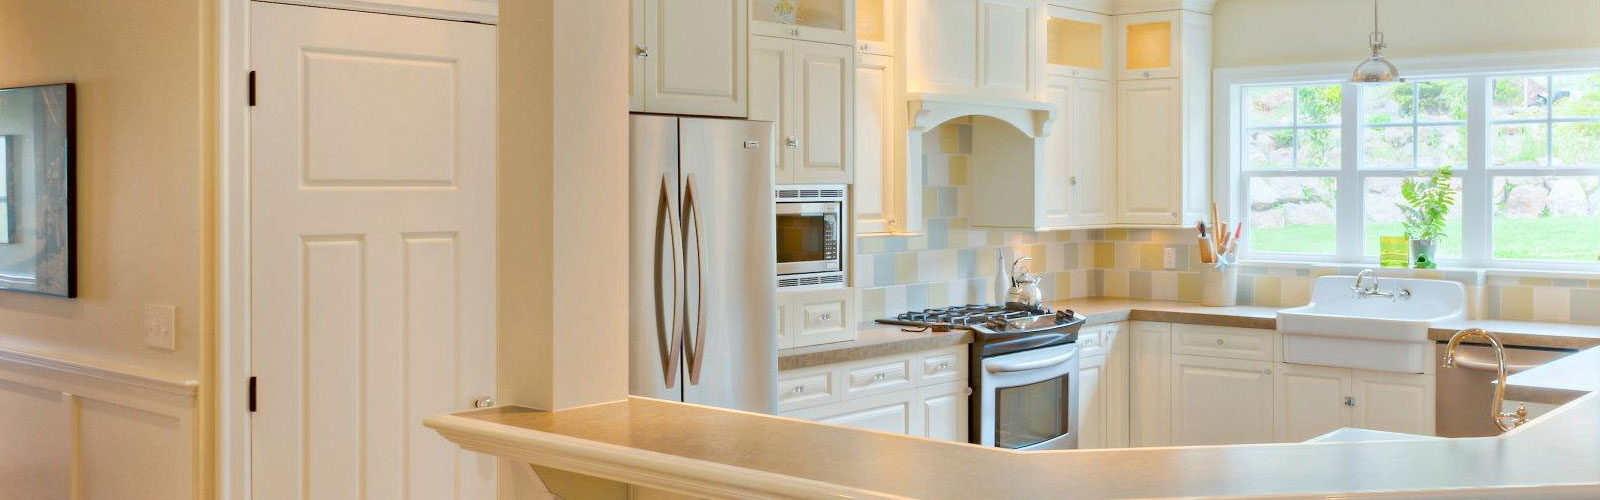 Top 40 Woodworks | Leaders in Commercial & Residential Millwork